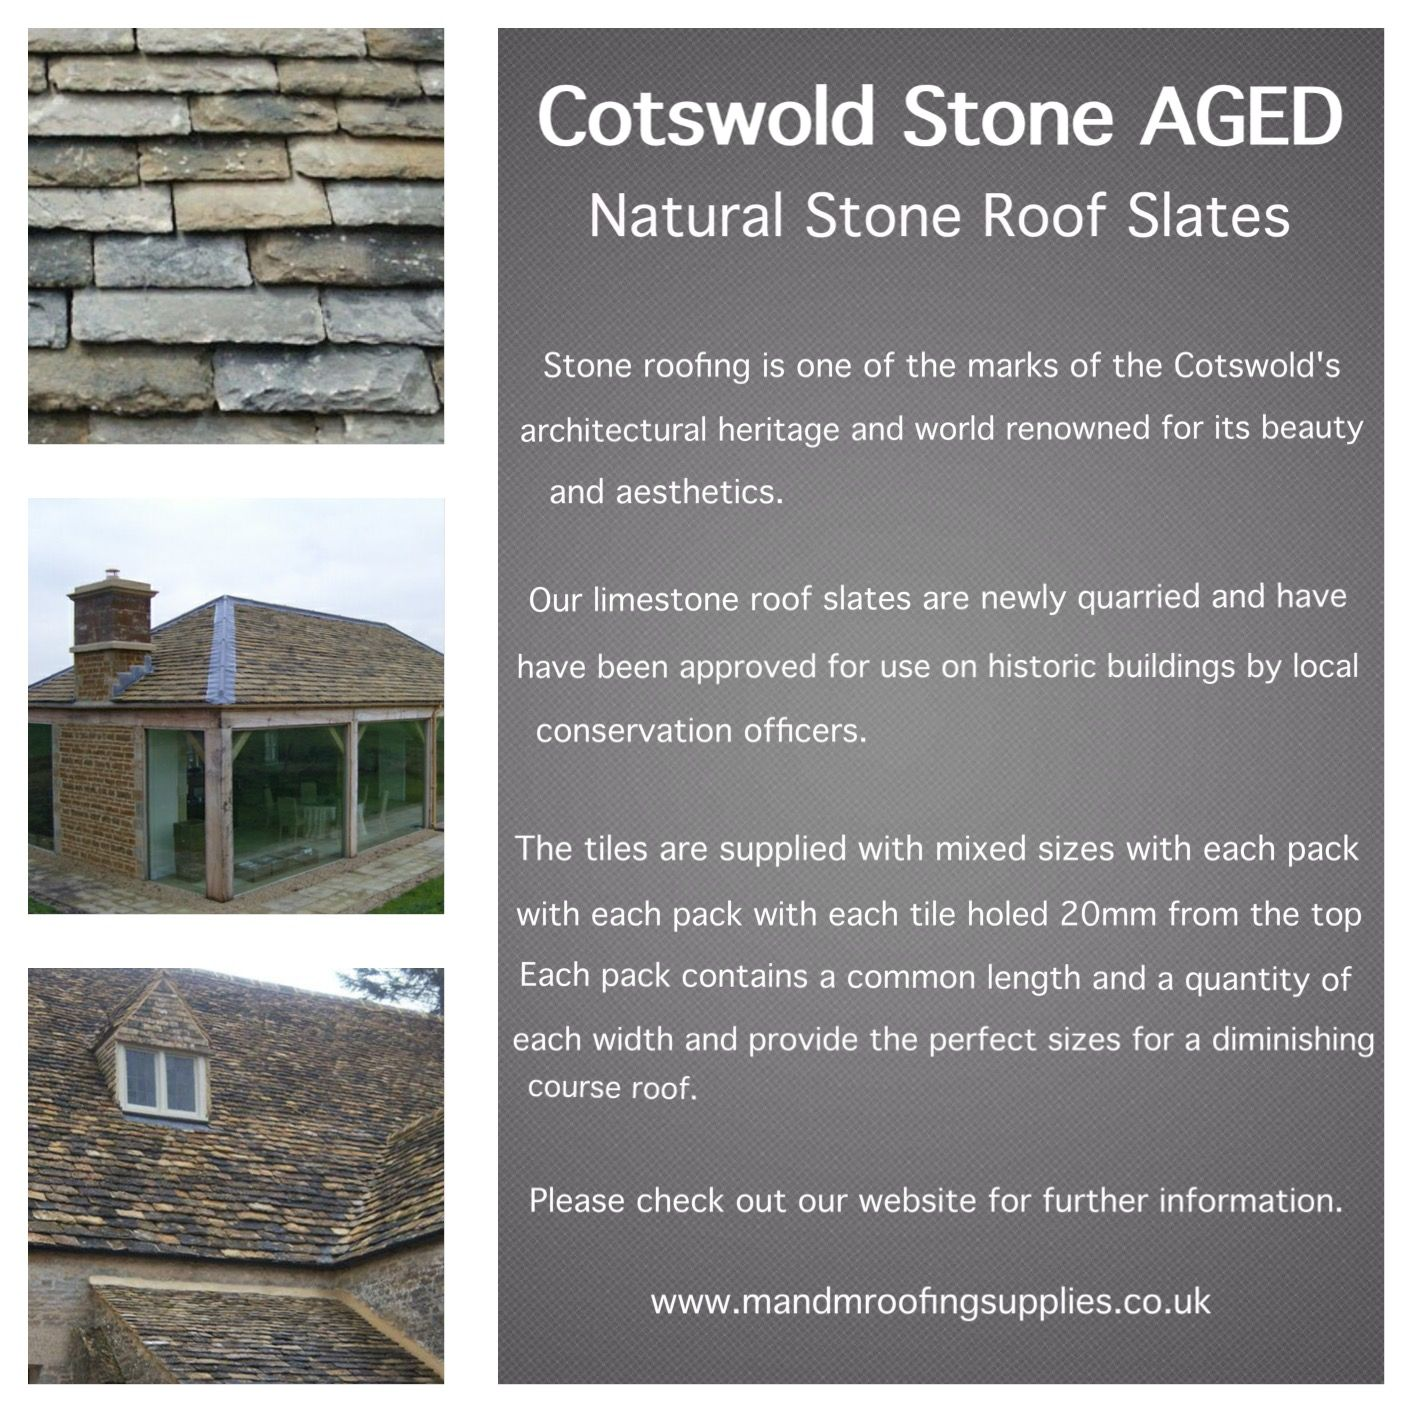 Costwold Stone Aged Roofing Supplies Roofing Clay Roof Tiles